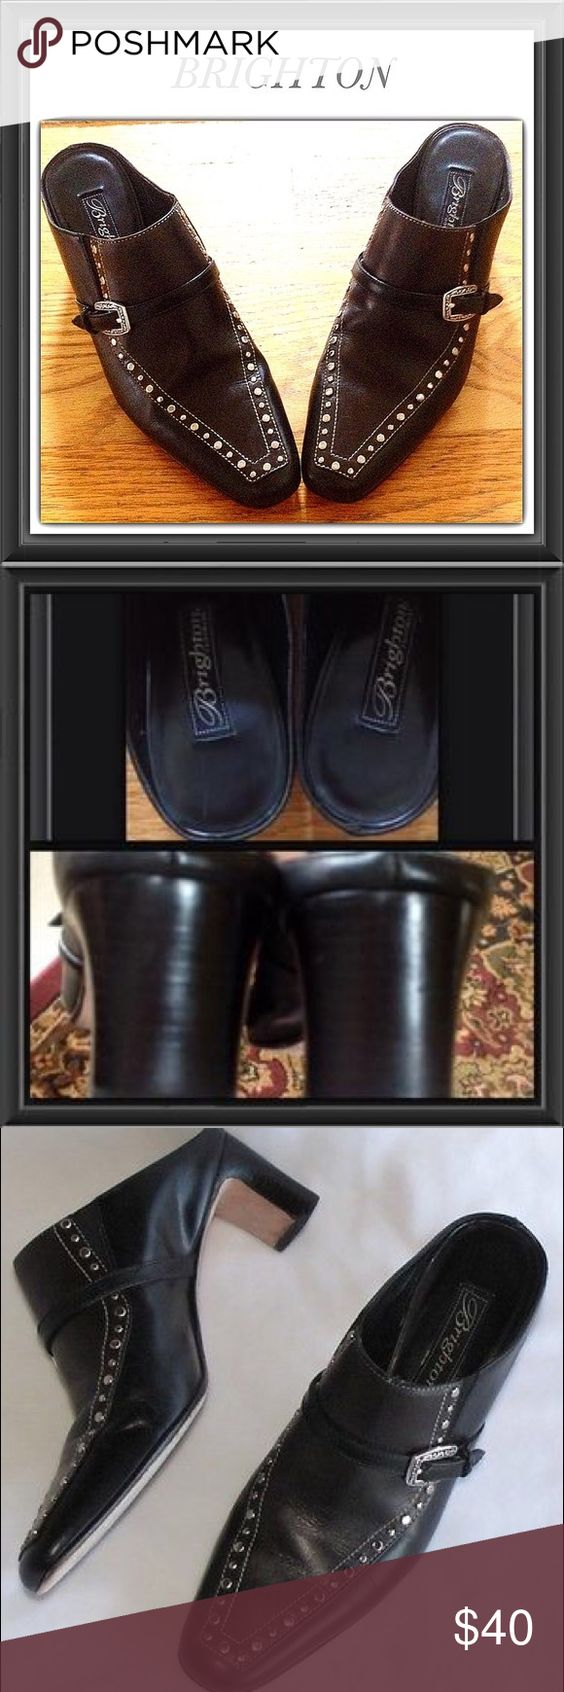 Brighton Studded Leather Tempe Mules Clogs 7M Brighton Studded Leather Tempe Mules Clogs 7m (also Fits M Width) Black and brown Brighton Shoes Mules & Clogs